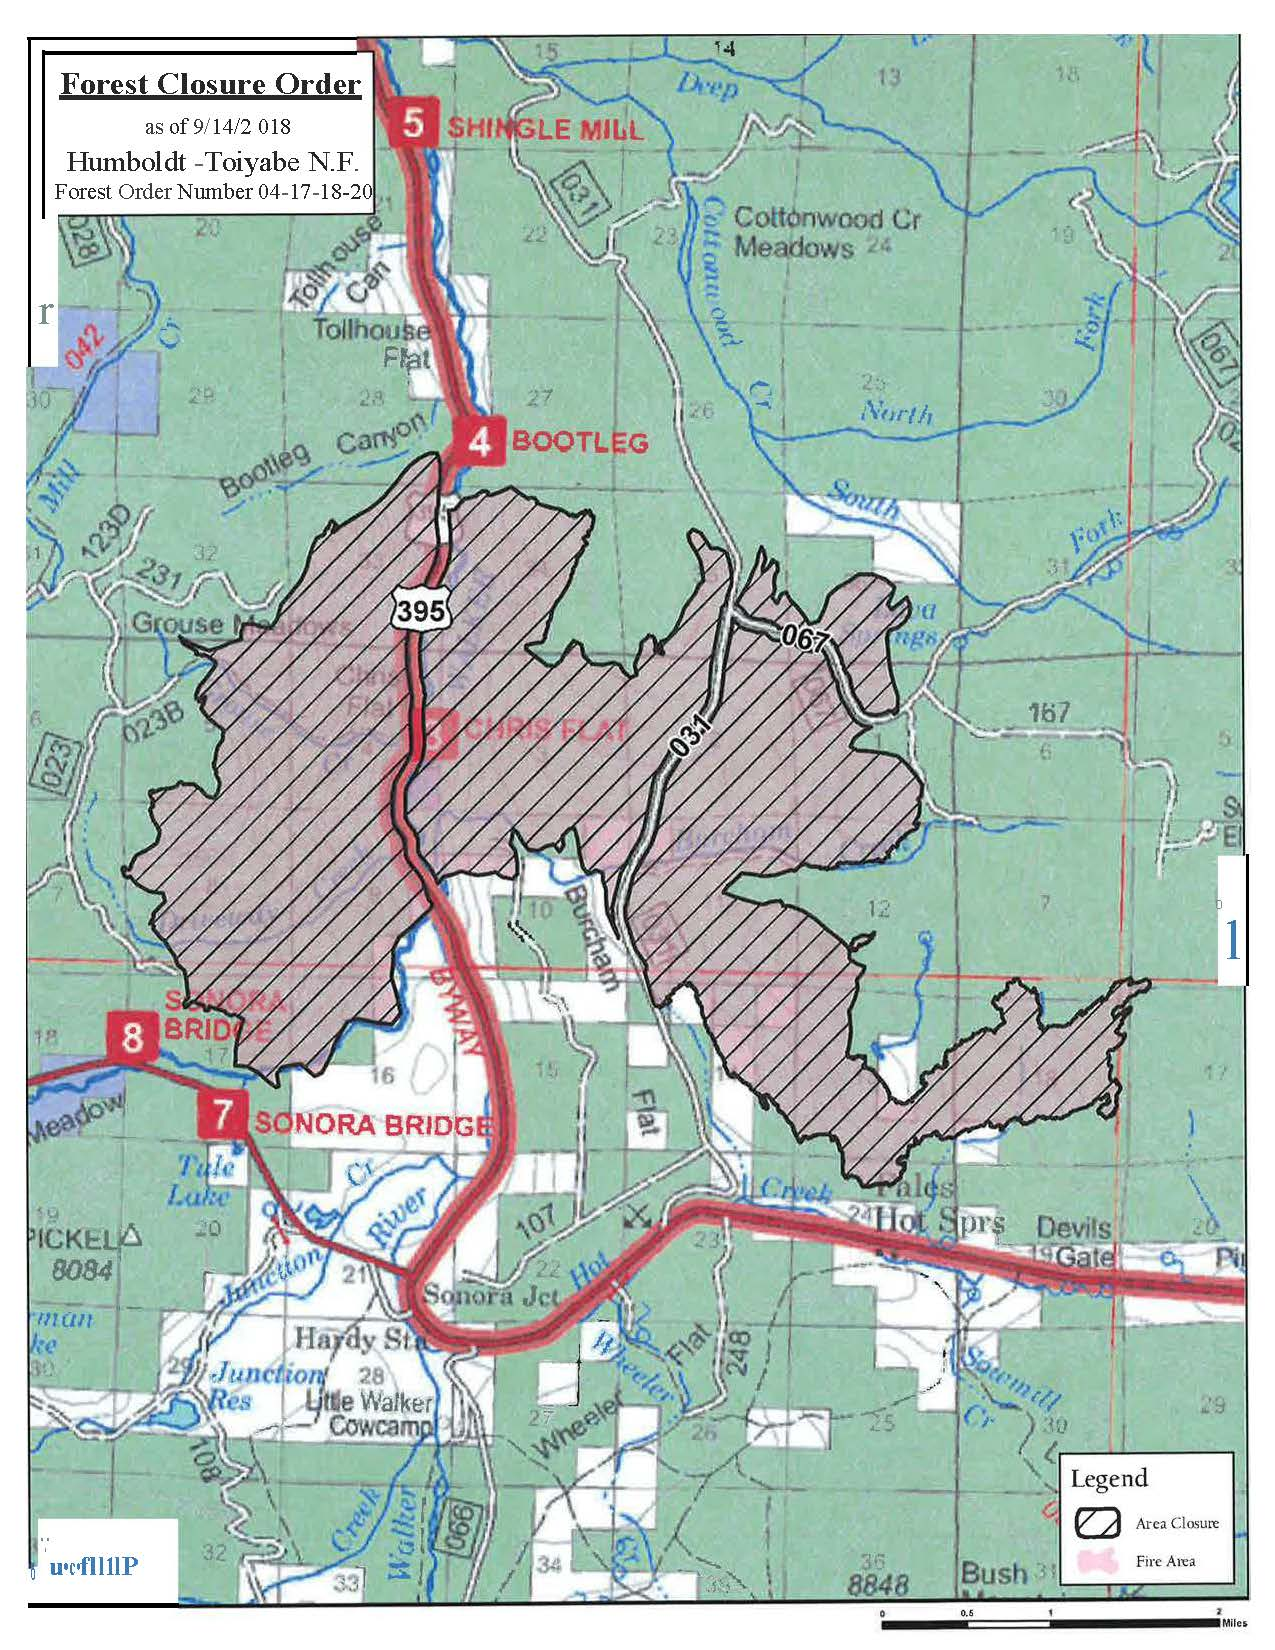 (down from 52 due to more accurate mapping), and 100% contained.7/4/2021 poore fire,. Humboldt Toiyabe National Forest News Events